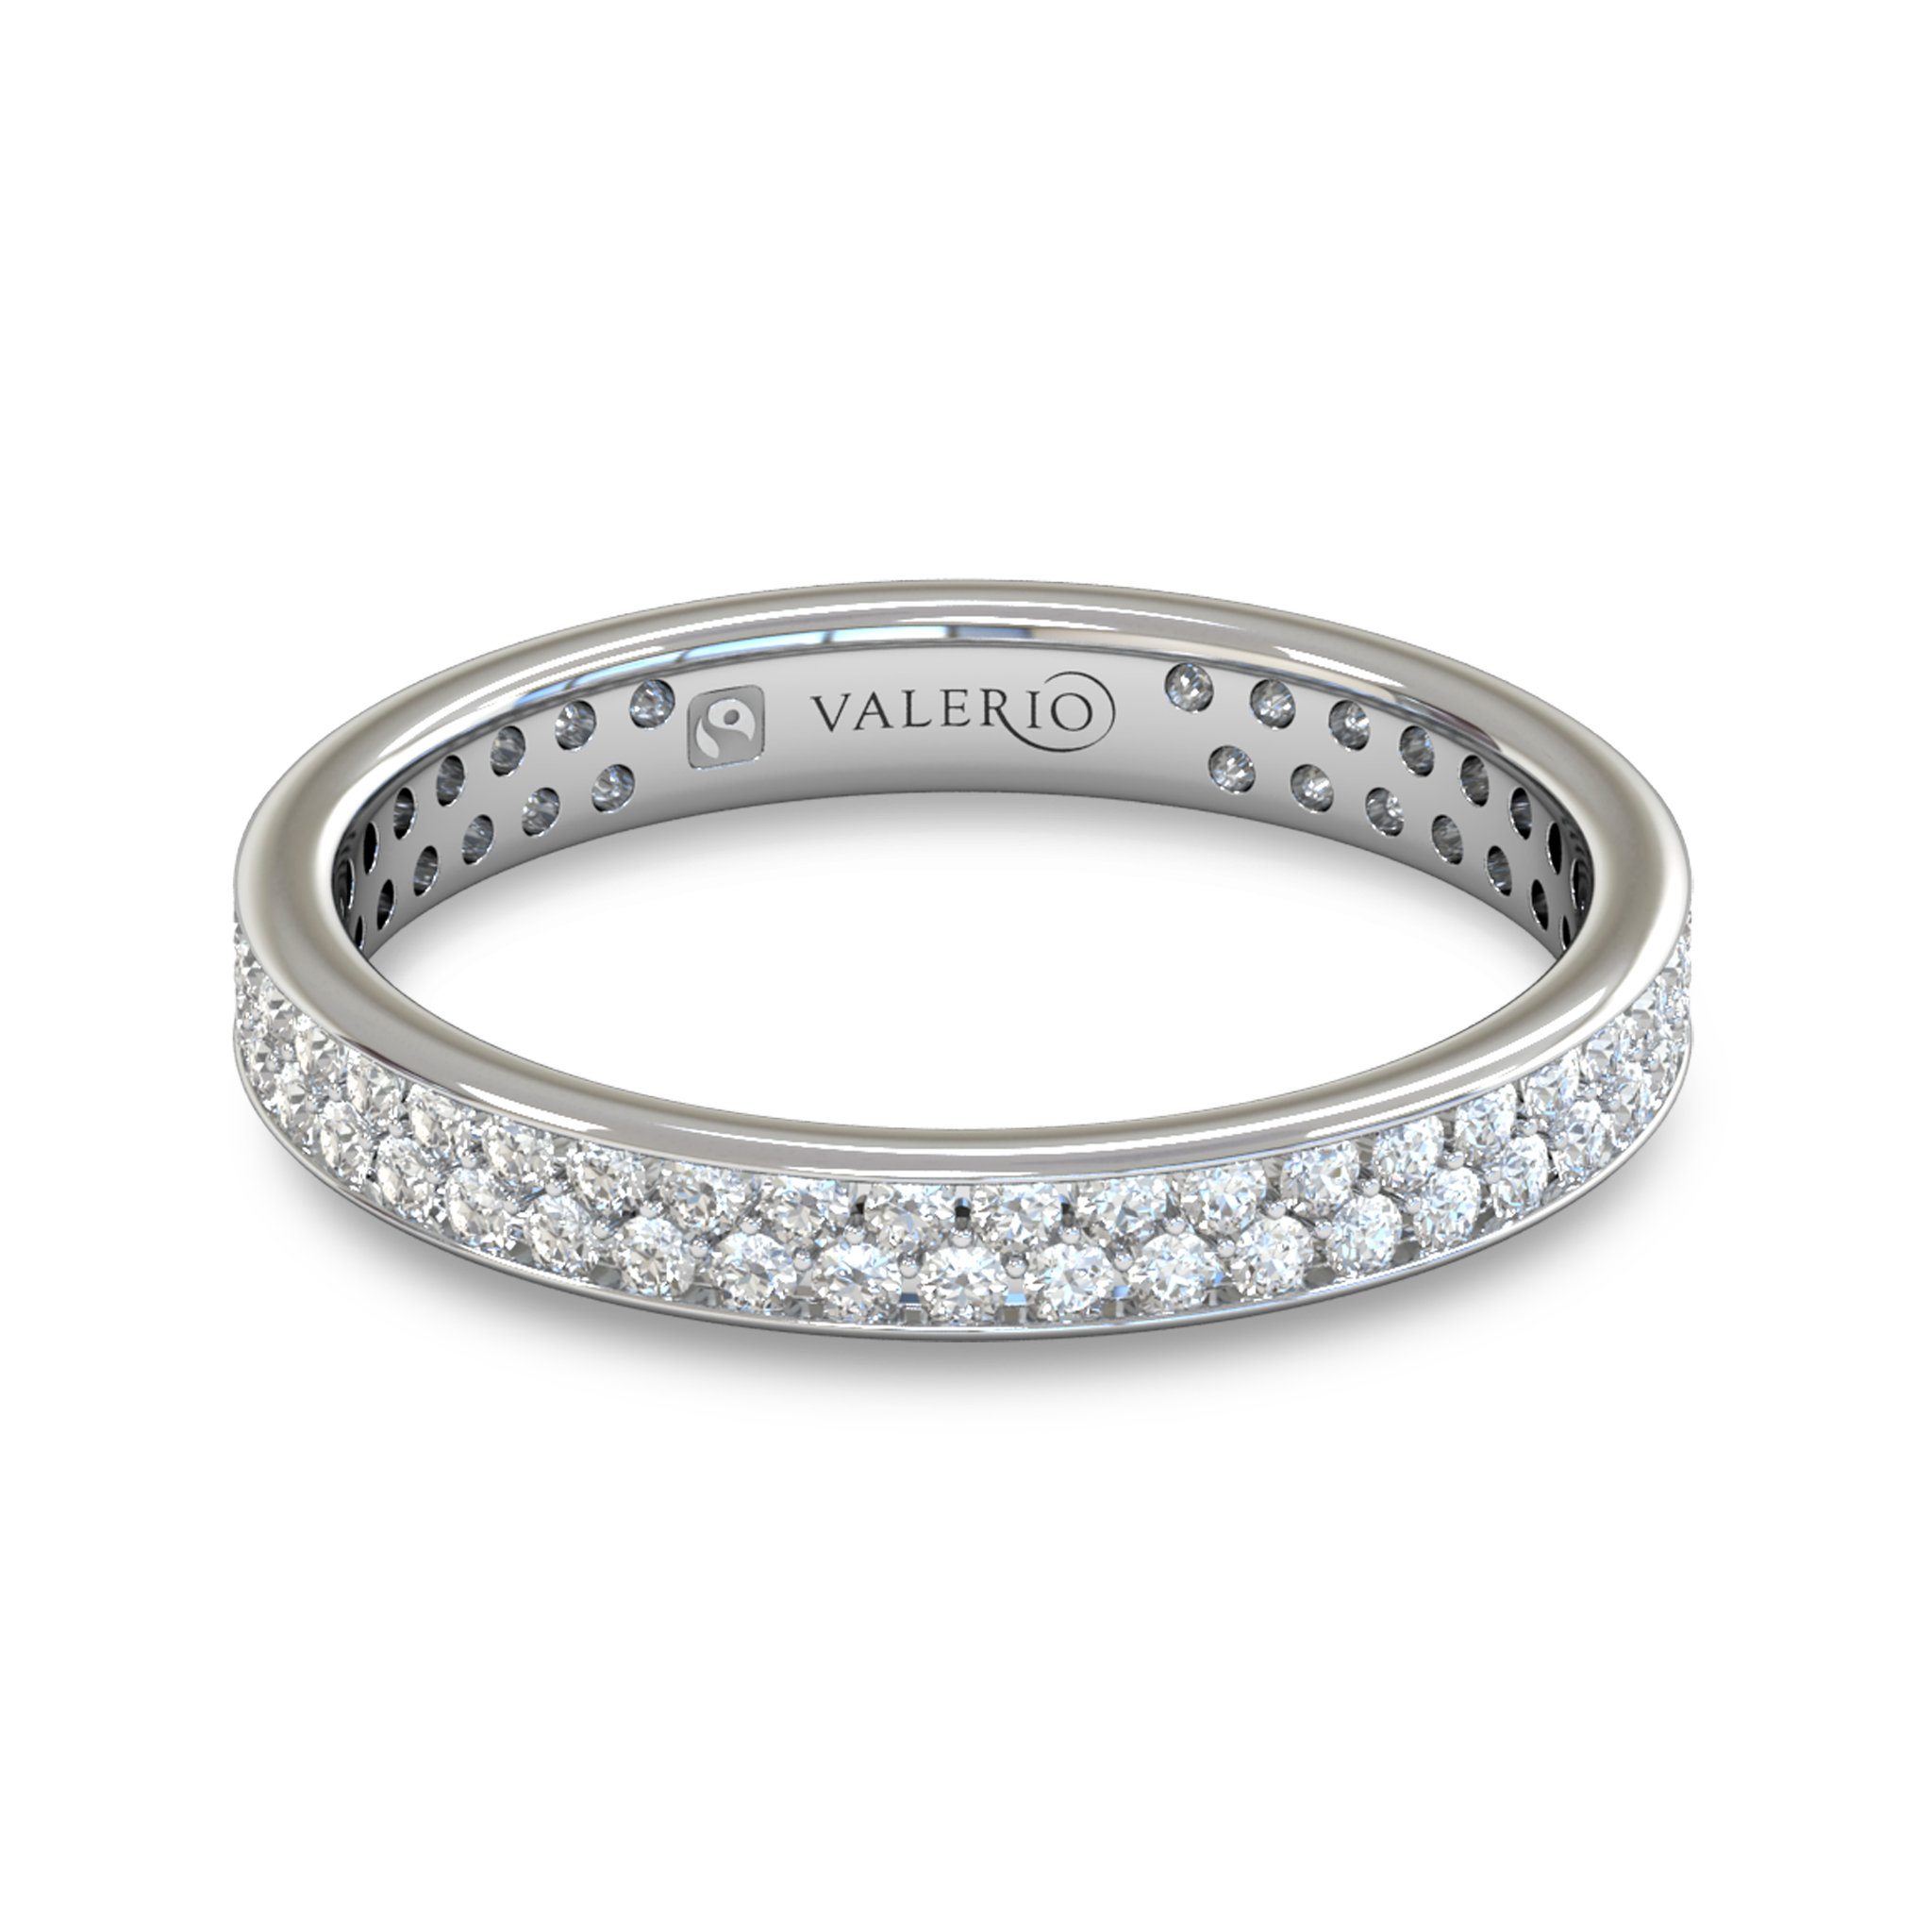 cushion cut and medieval carat our blog engagement wedding predictions jewelers hamilton rings engagements celebrity ring